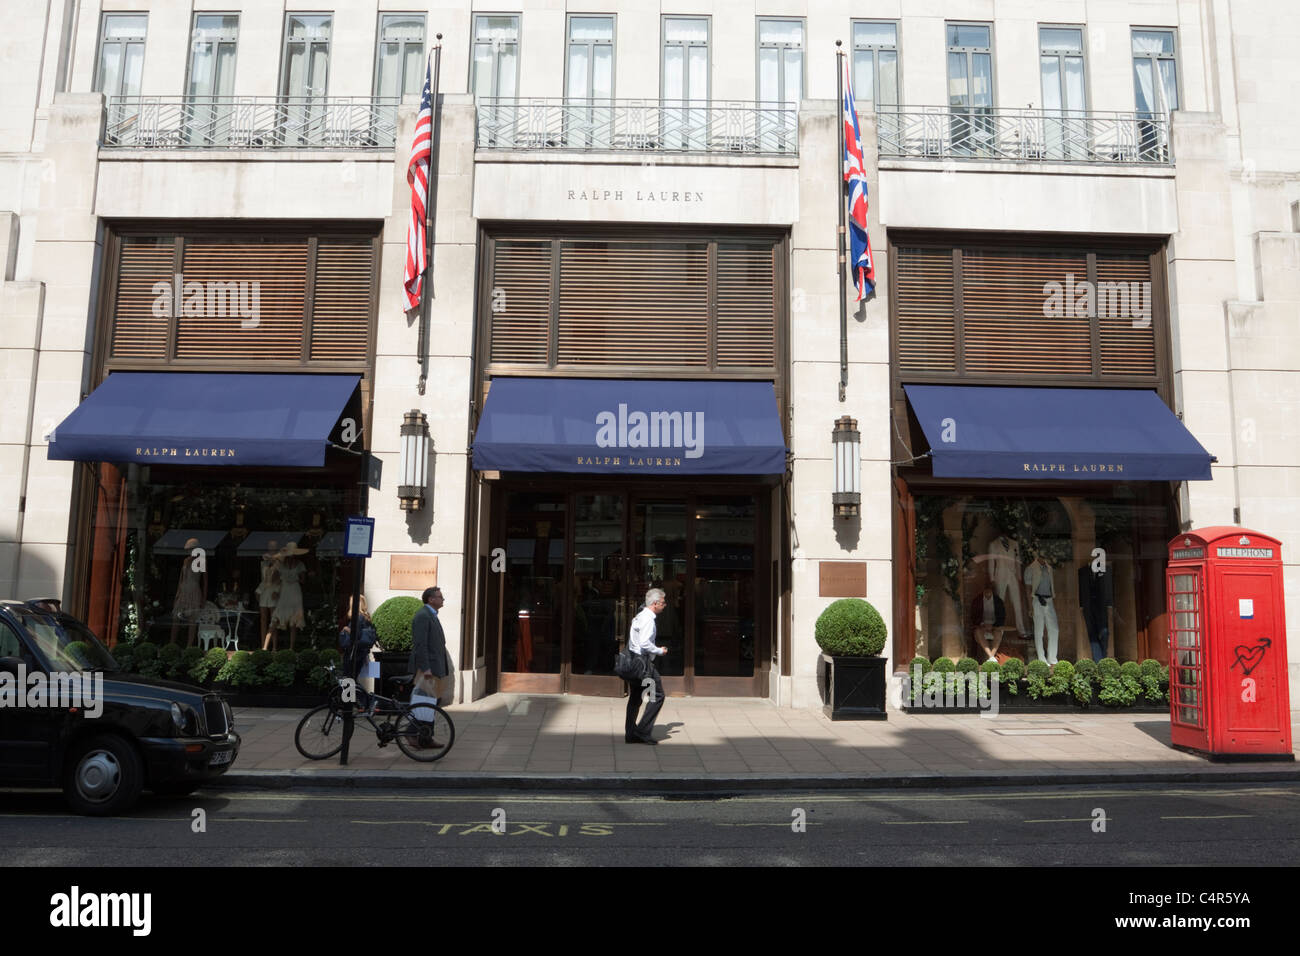 Ralph Lauren shop/store front, New Bond Street, London, England - Stock Image